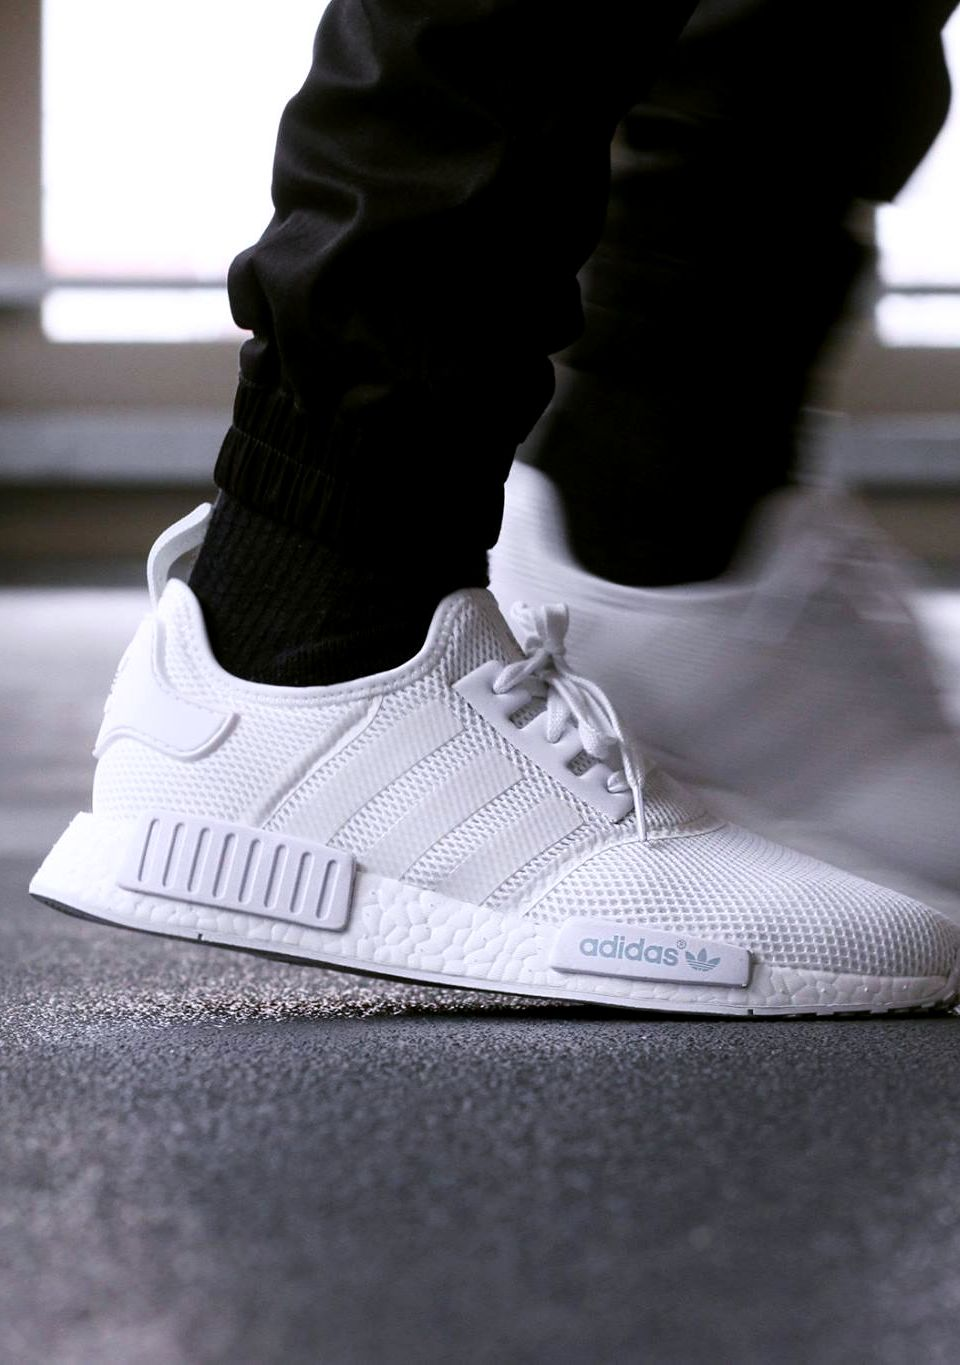 0a4c8098b990db Sneakerando — ADIDAS NMD R1 WHITE Soulier Homme, Chaussures Homme, Mode  Homme, Accessoires